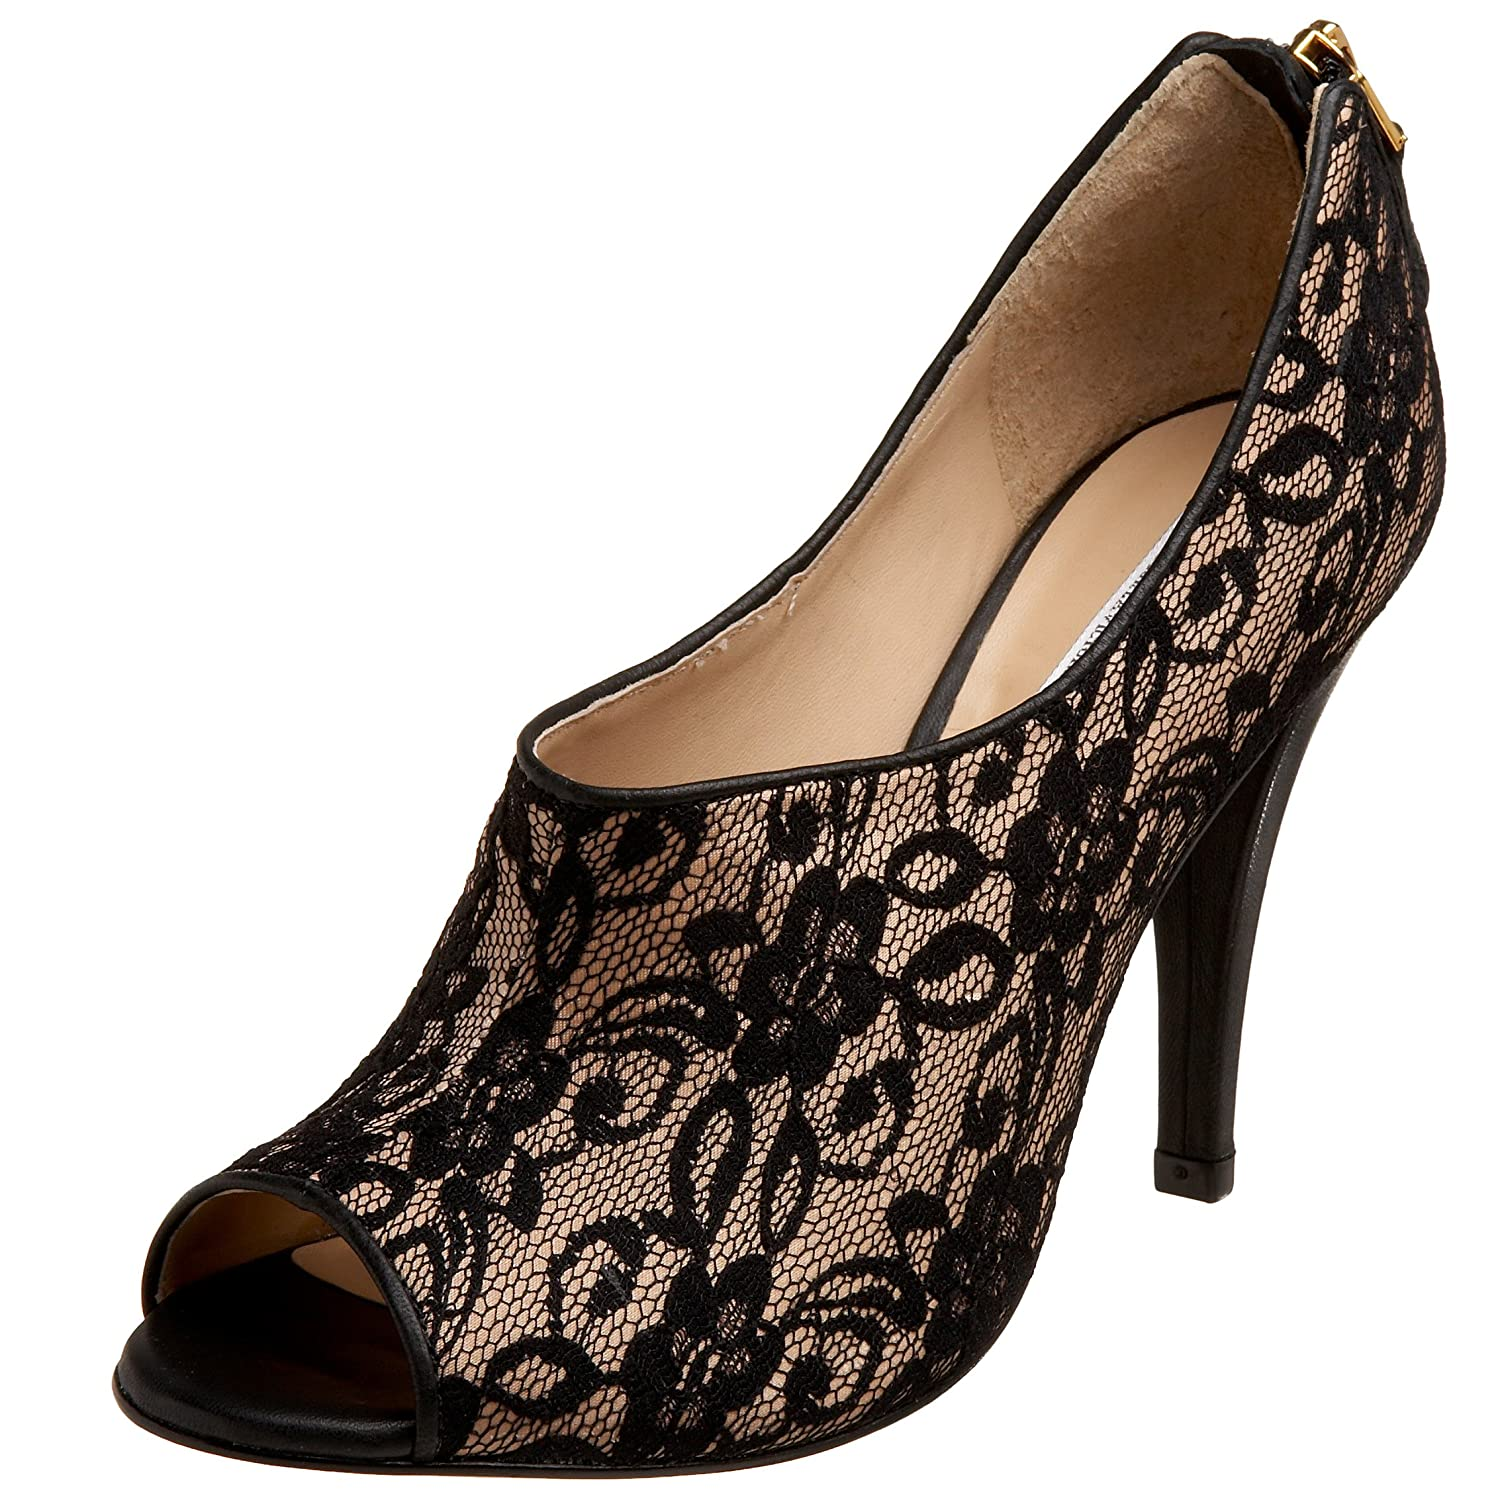 Pour La Victoire Elena Peep Toe Shoetie from endless.com